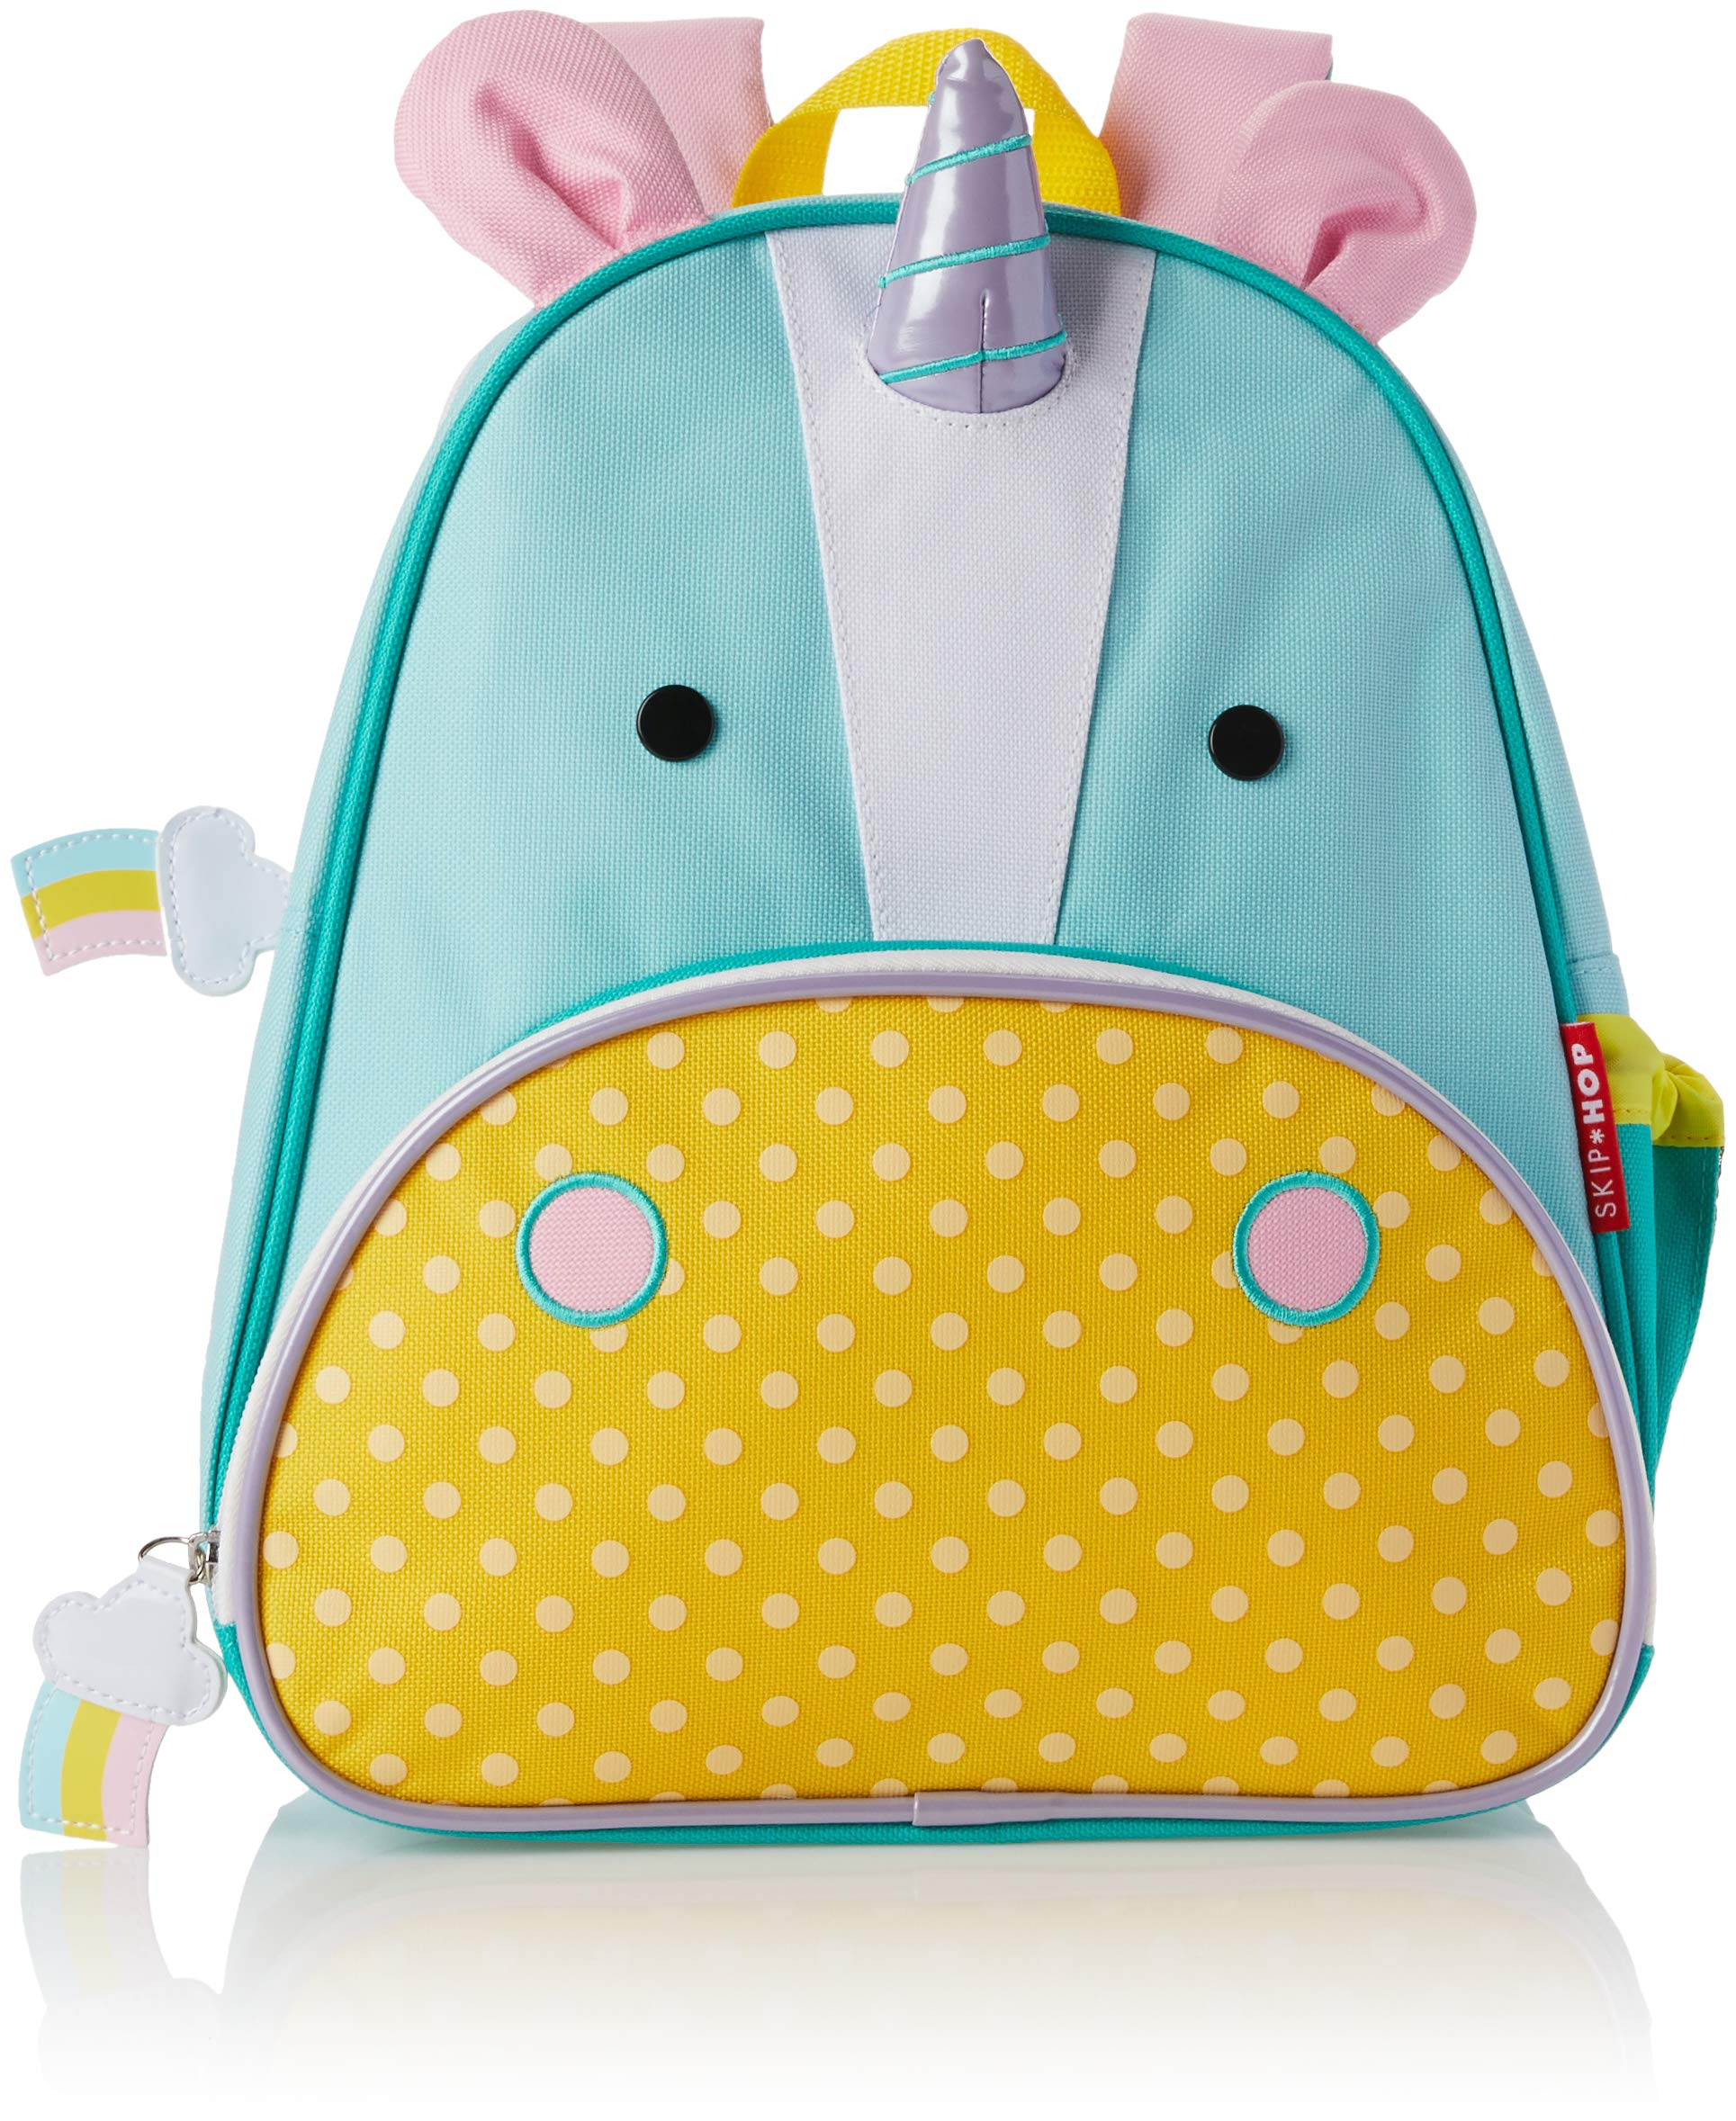 ... agree that Mancro Smart Laptop Backpack and ArcEnCiel Kid s Backpack  are the best bags … MAGIC UNION Children School Bags boy Backpacks Schoolbag 6fb4b6a0f1da4